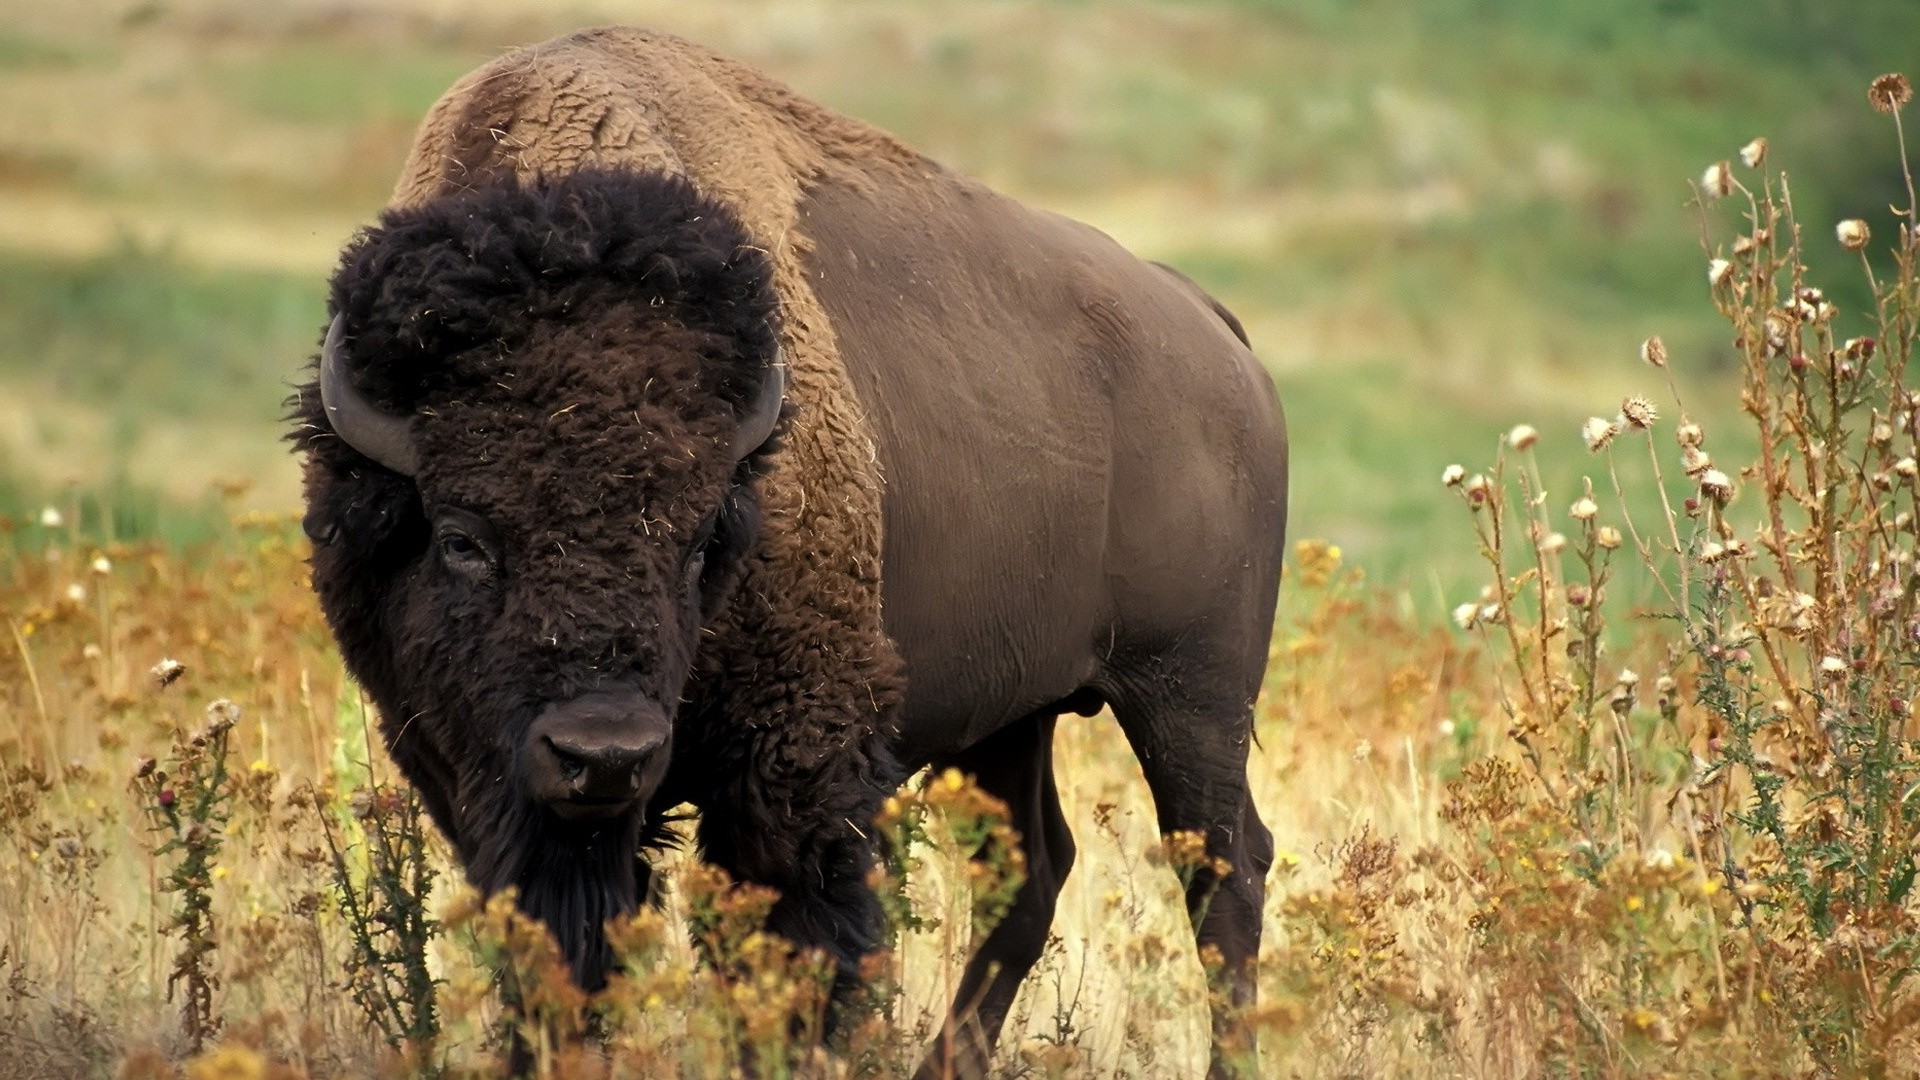 buffalo hd wallpapers Desktop Backgrounds for HD Wallpaper 1920x1080